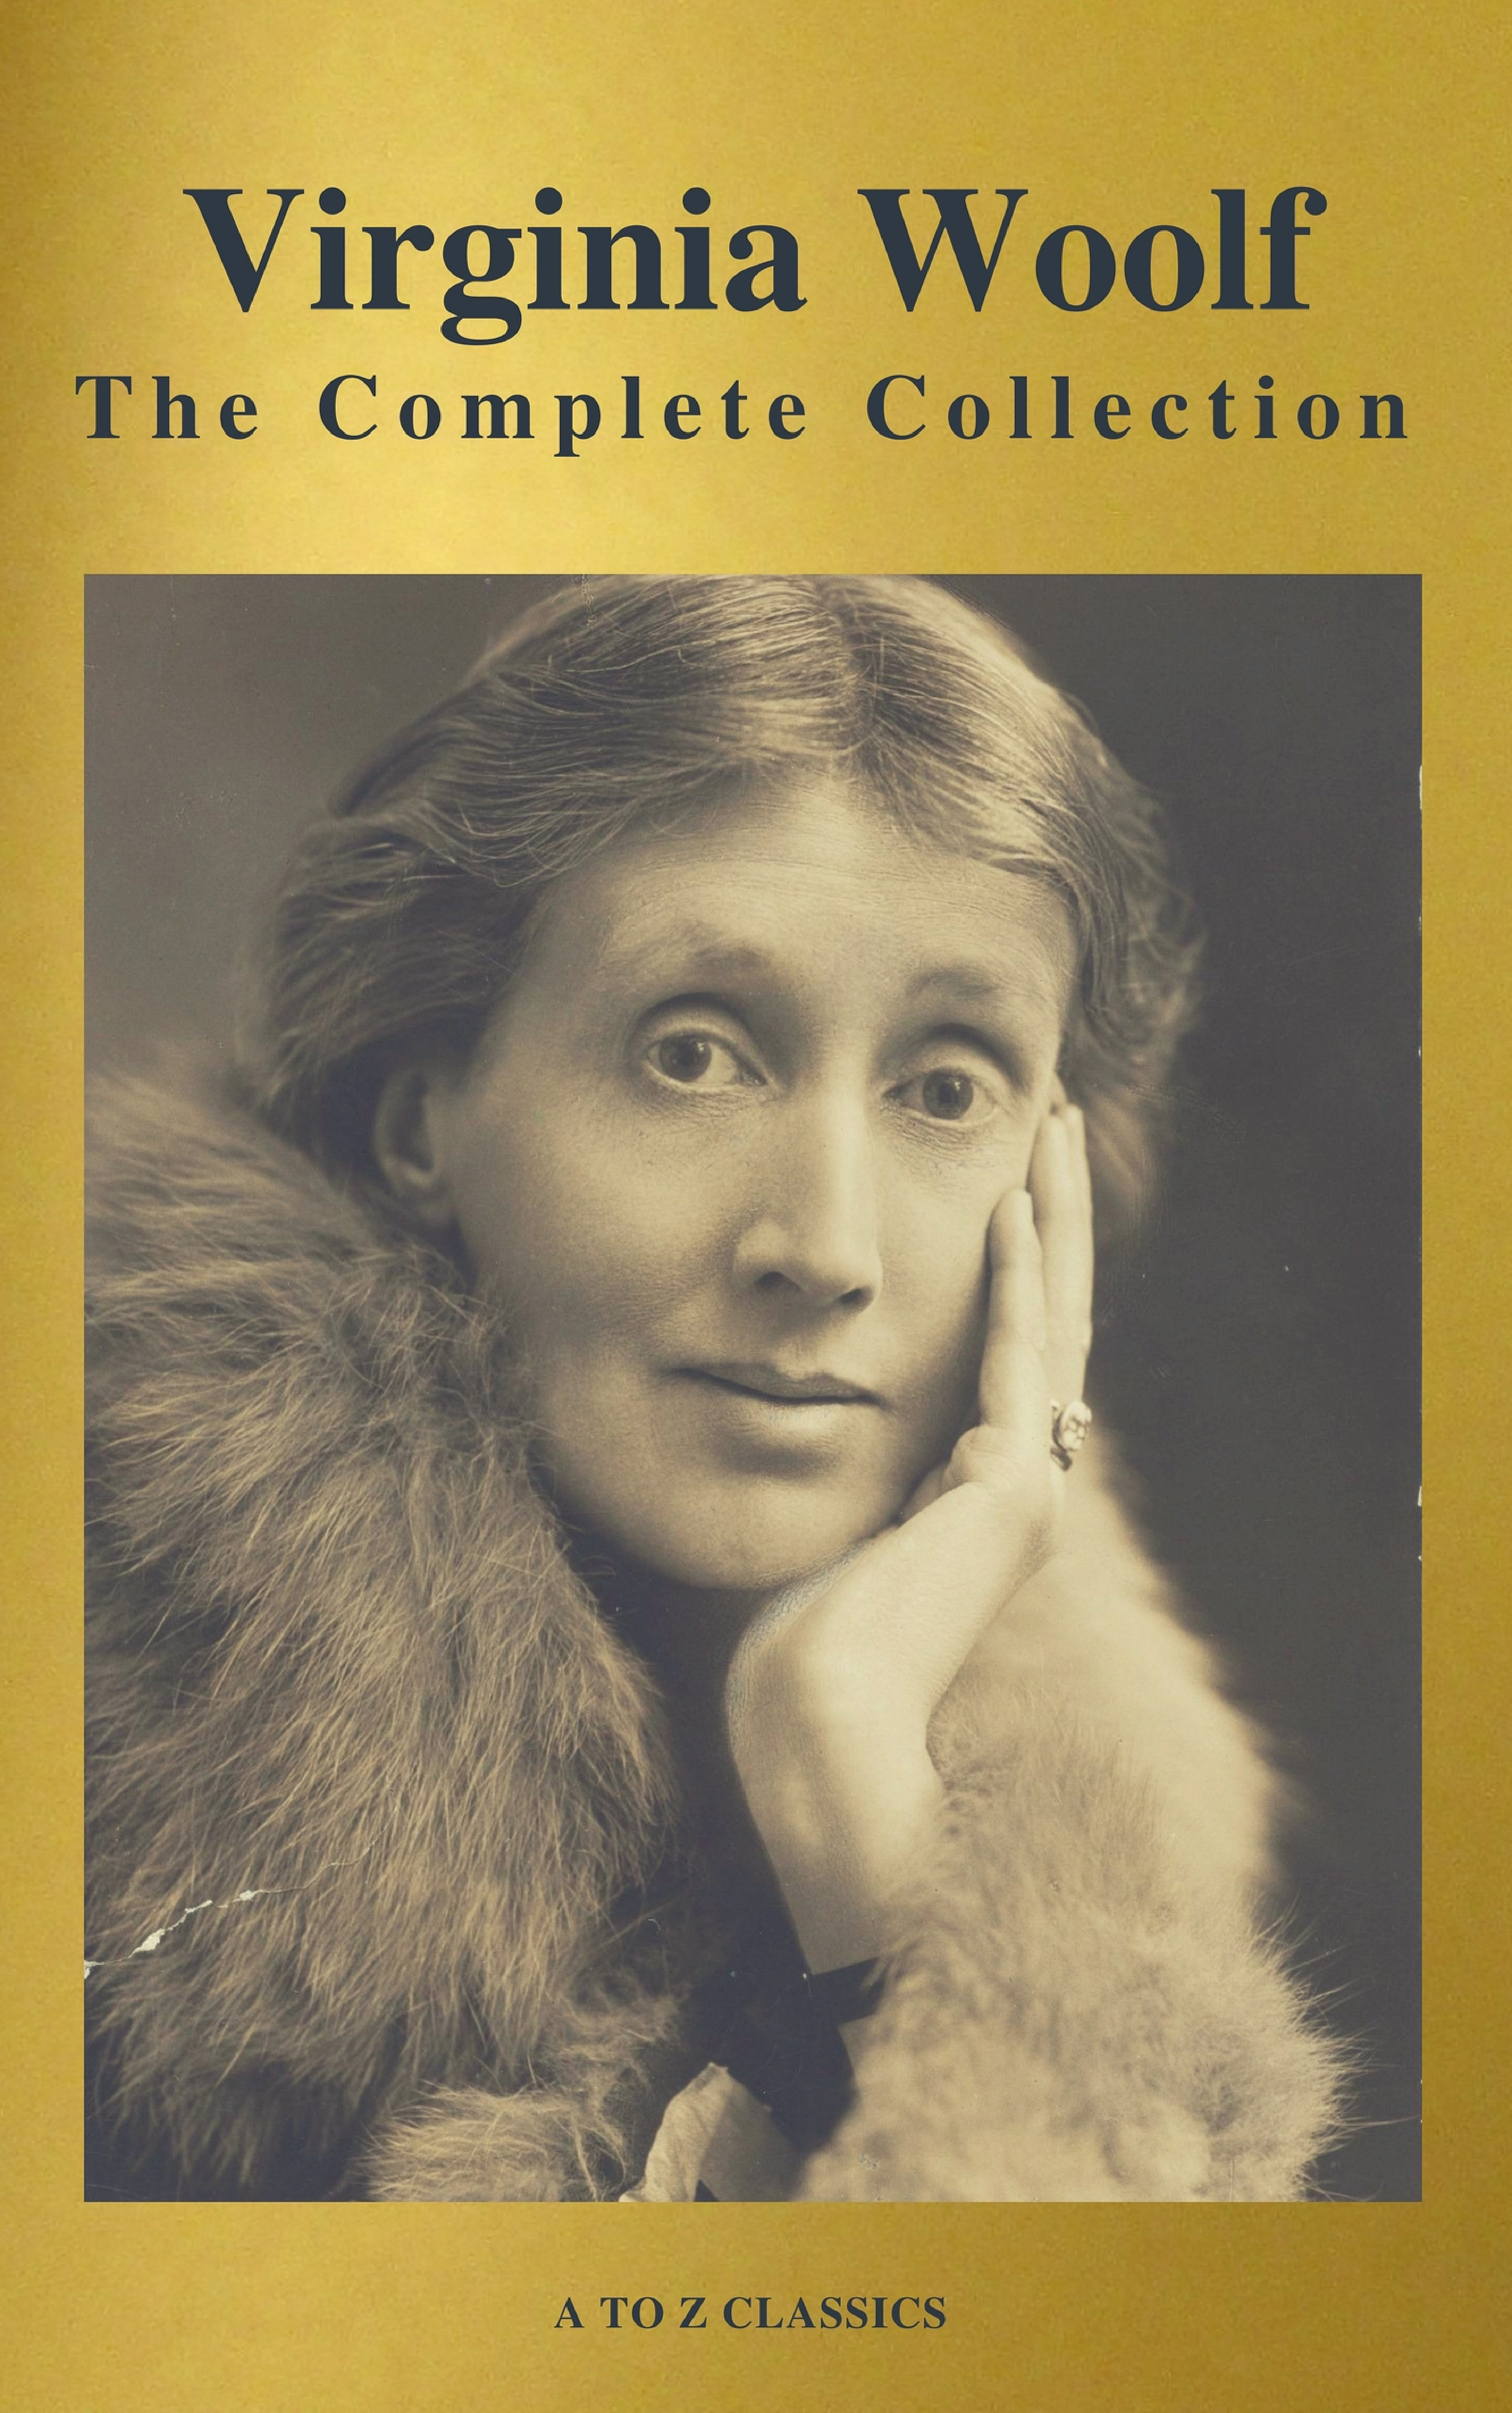 virginia woolf the complete collection active toc a to z classics